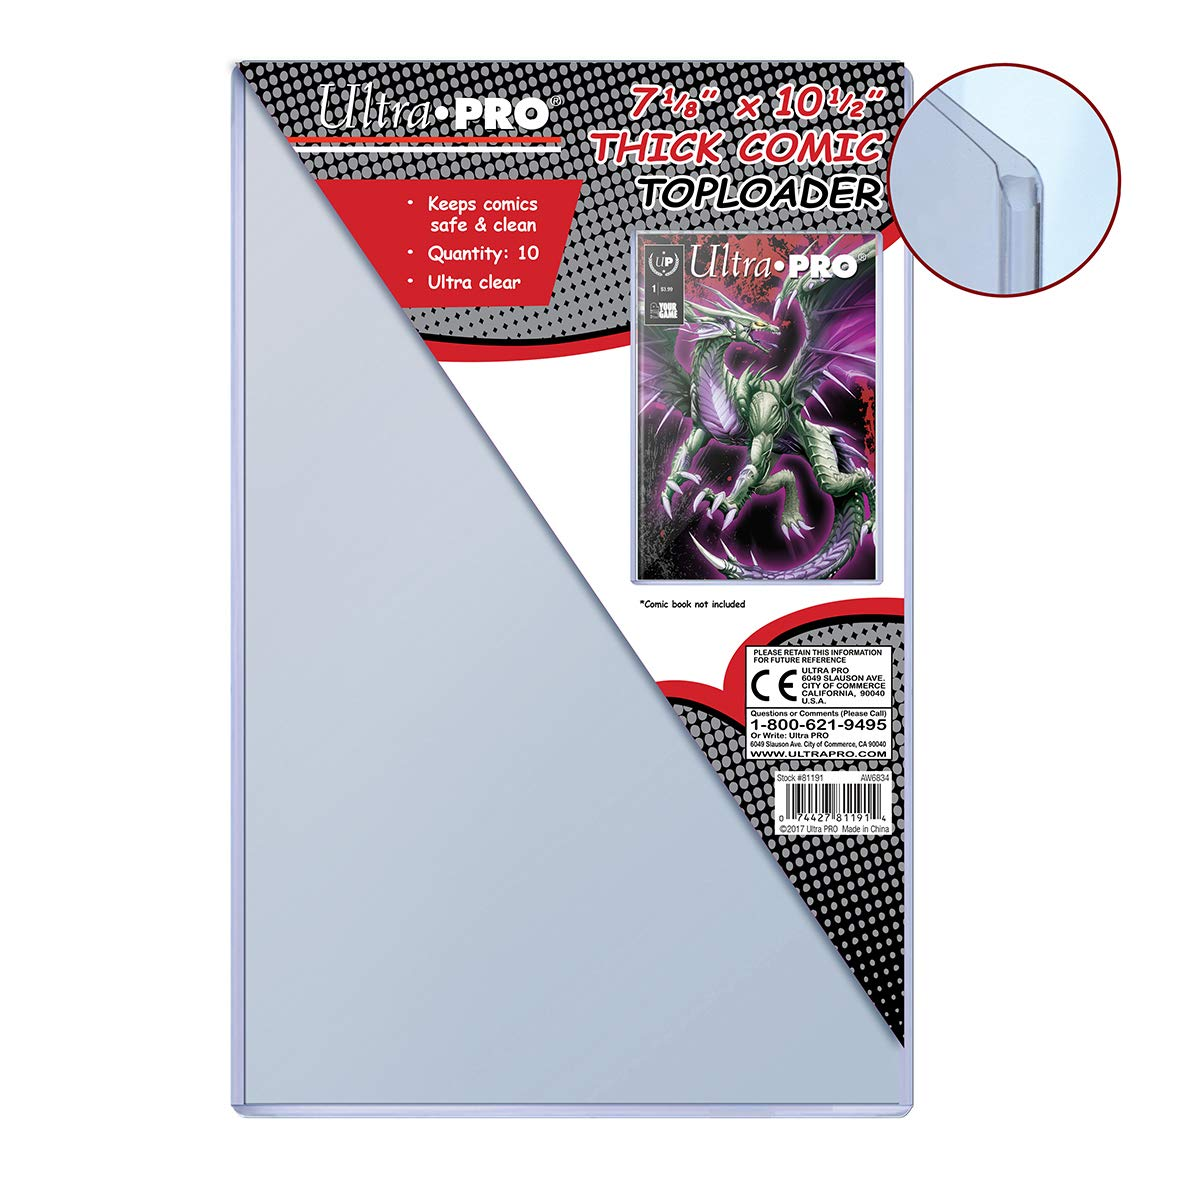 Ultra Pro 7-1/8' X 10-1/2' Thick Comic Toploader 10ct SS-SPI-SFTL1175